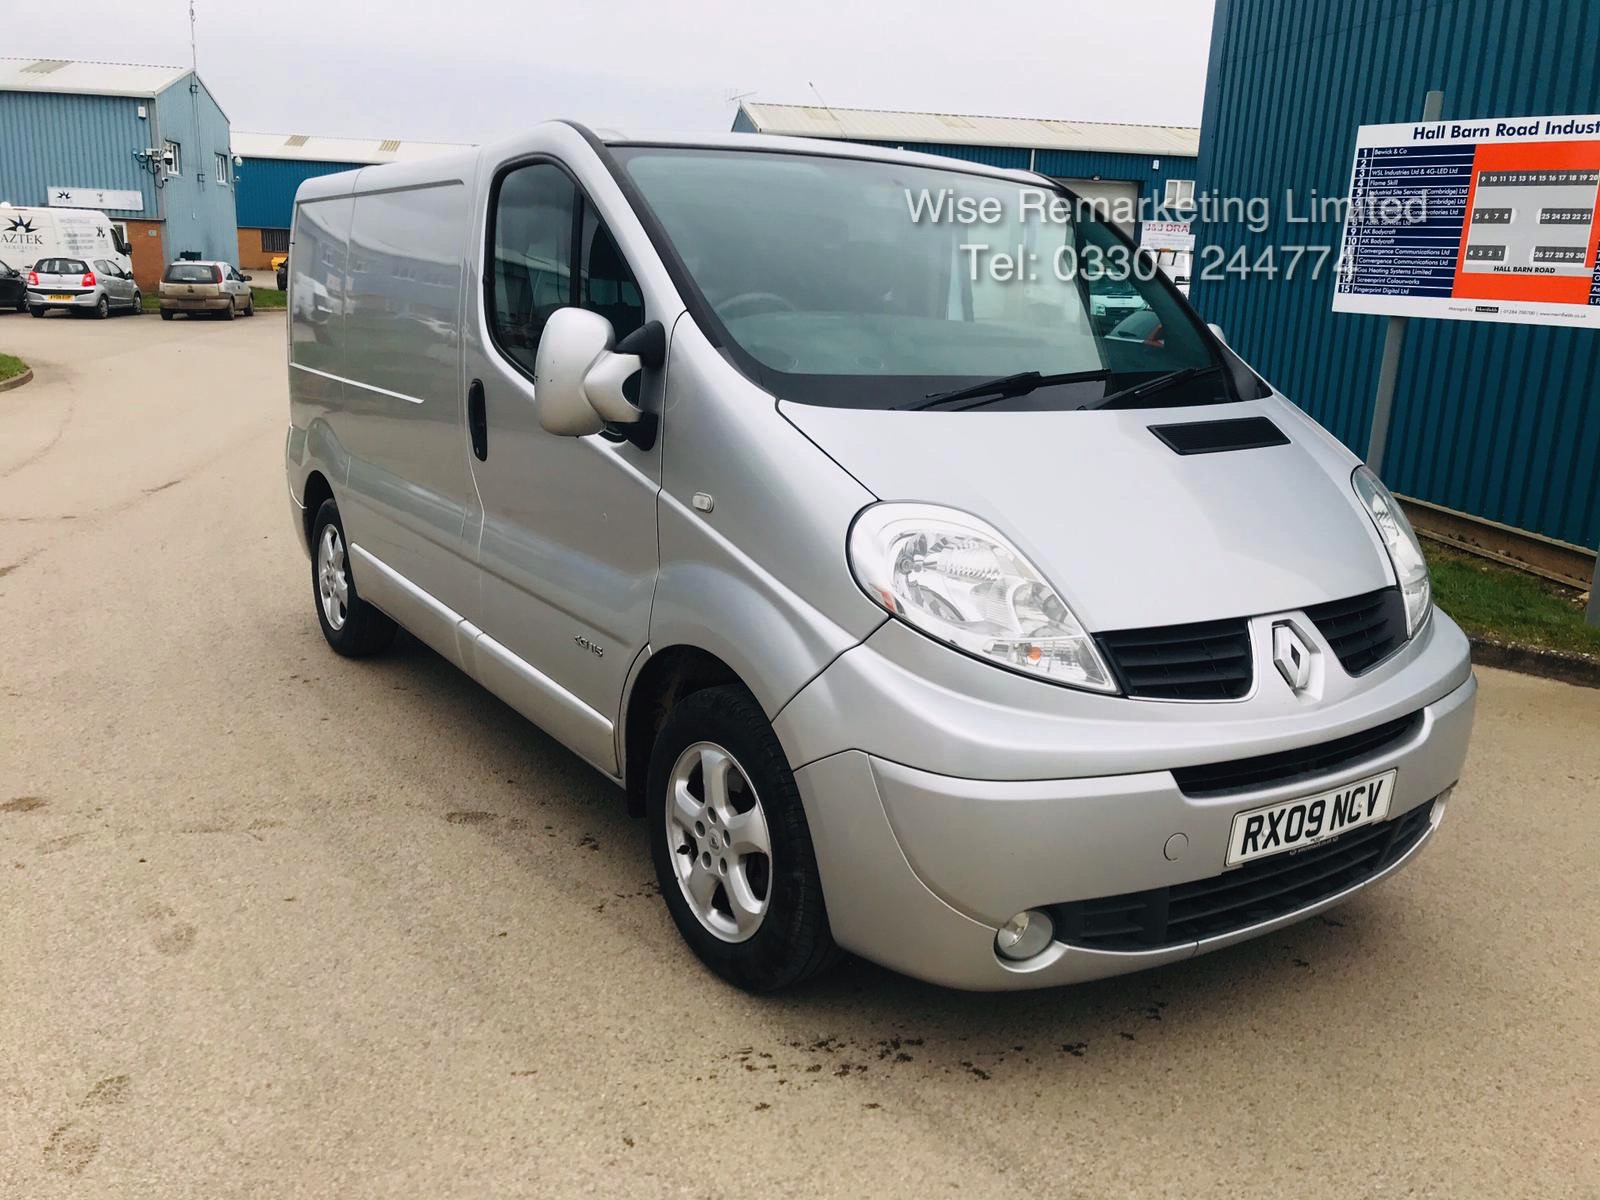 Renault Trafic Sport 2.0 DCI (115 BHP) **Automatic** - 2009 09 Reg - Air Con - Ply lined